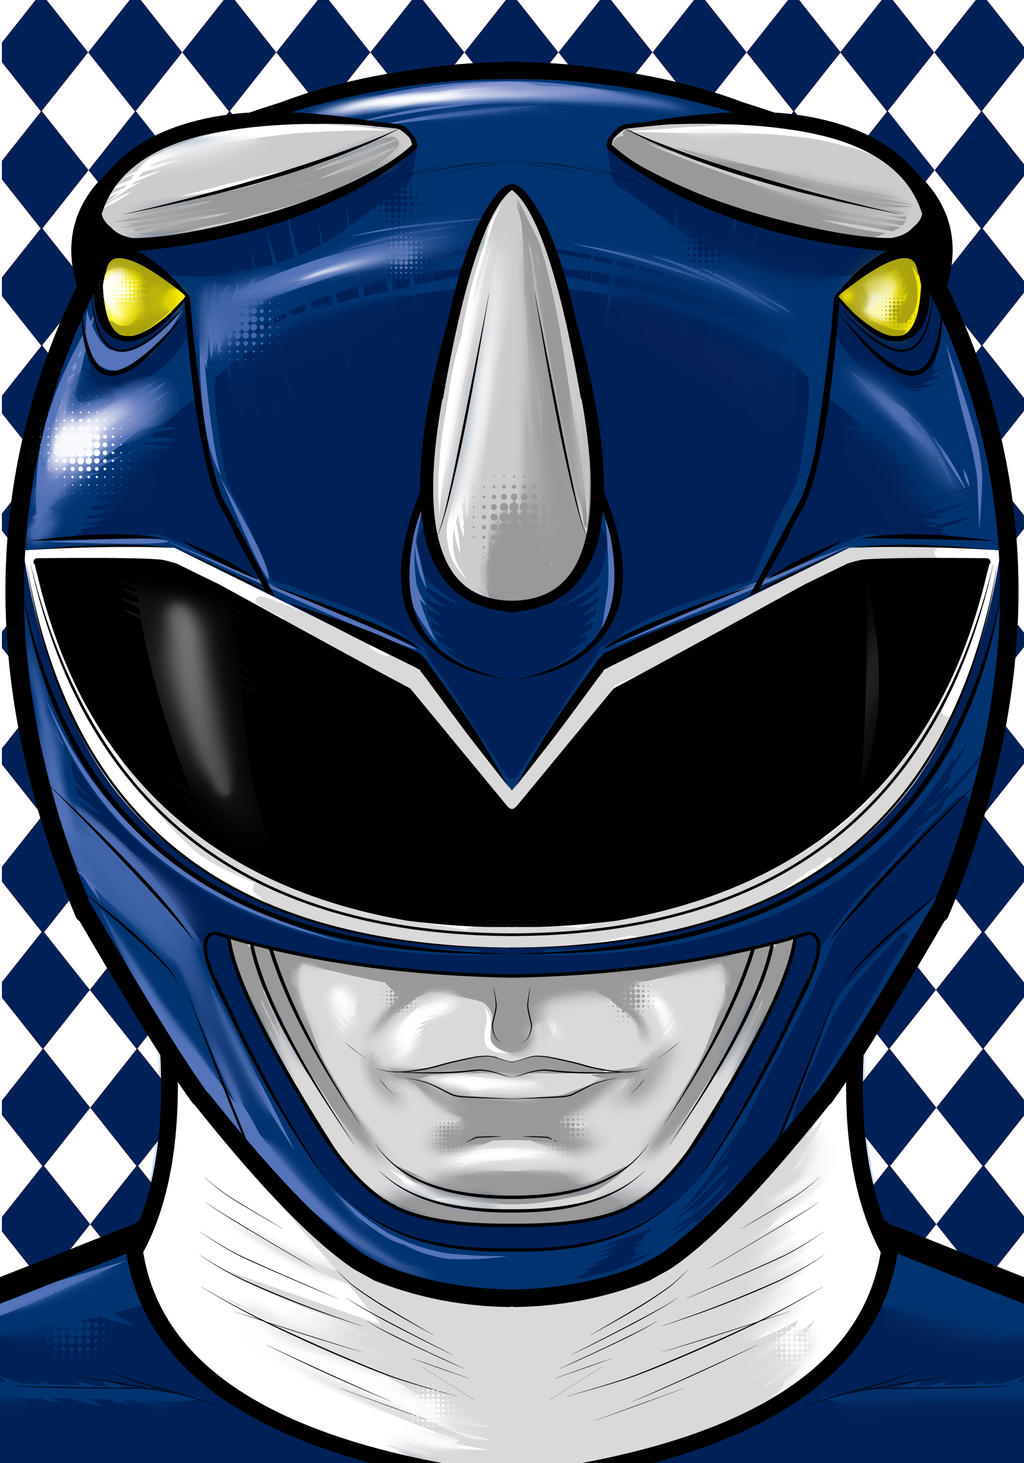 Blue Ranger by Thuddleston